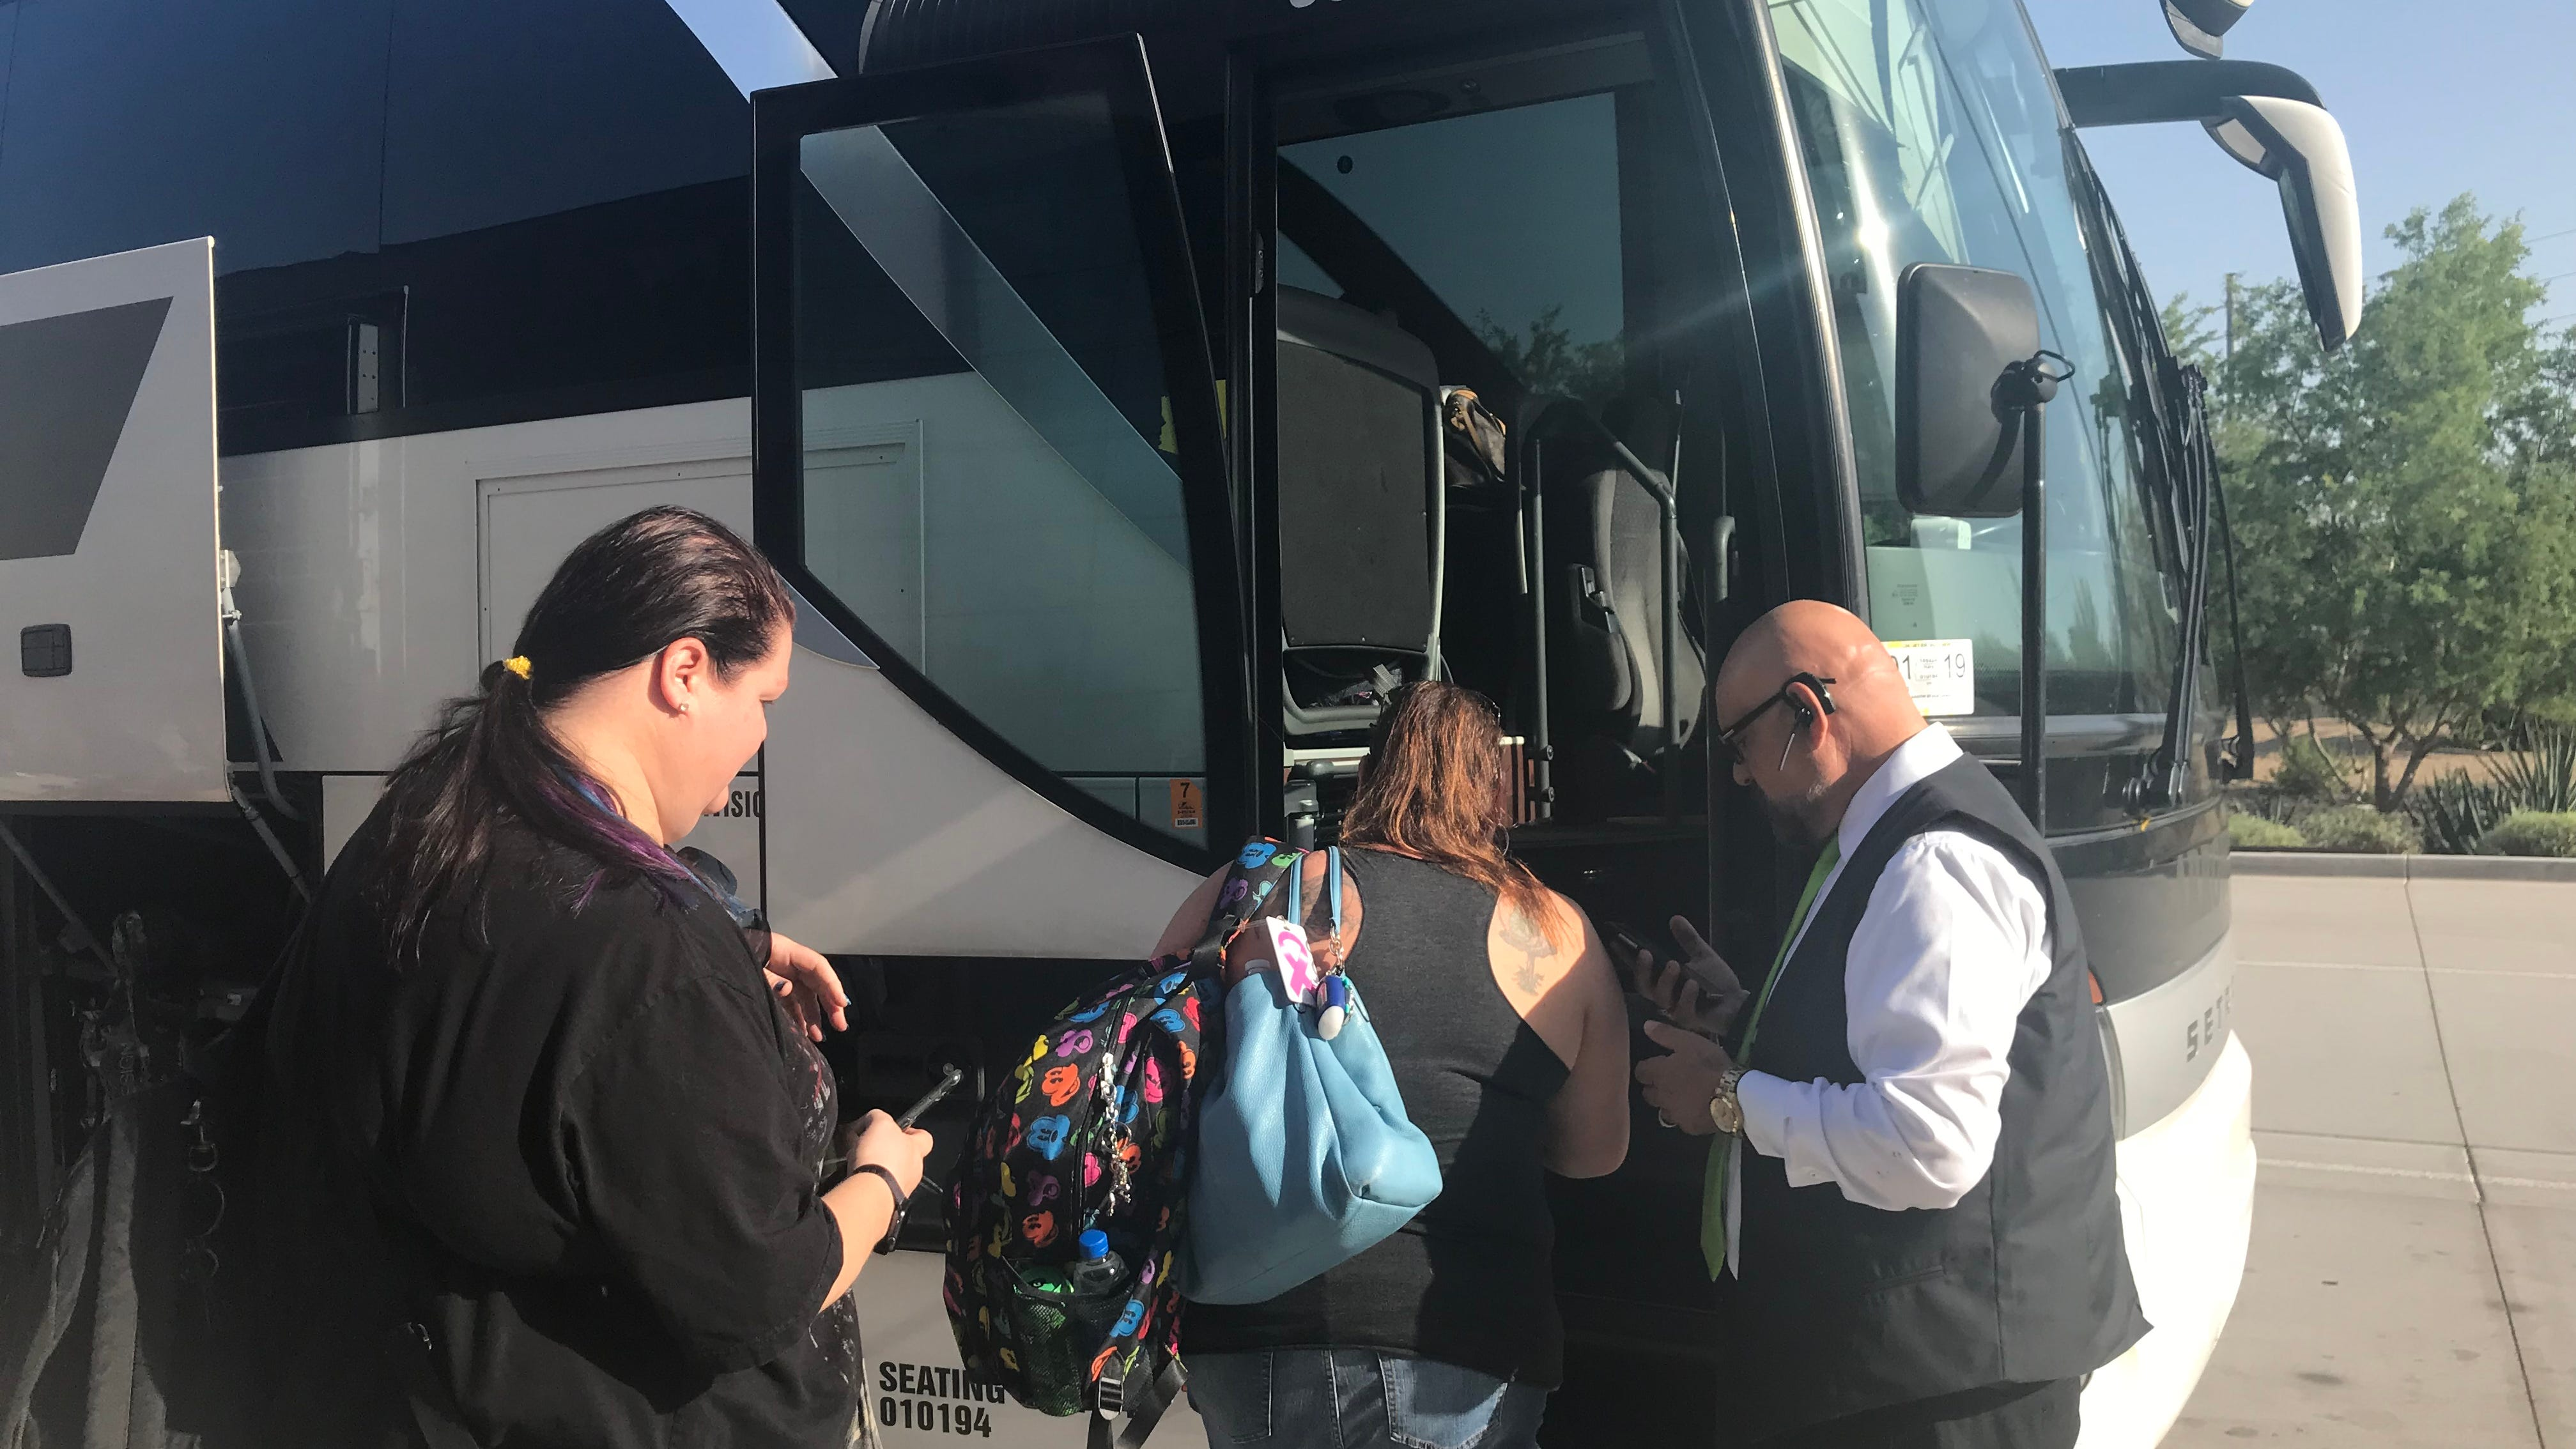 Passengers board a FlixBus at the Phoenix Sky Train Station near Phoenix Sky Harbor International Airport for a six-hour ride to Las Vegas. The buses are usually bright green but this was a last-minute substitution so the trip wasn't canceled.